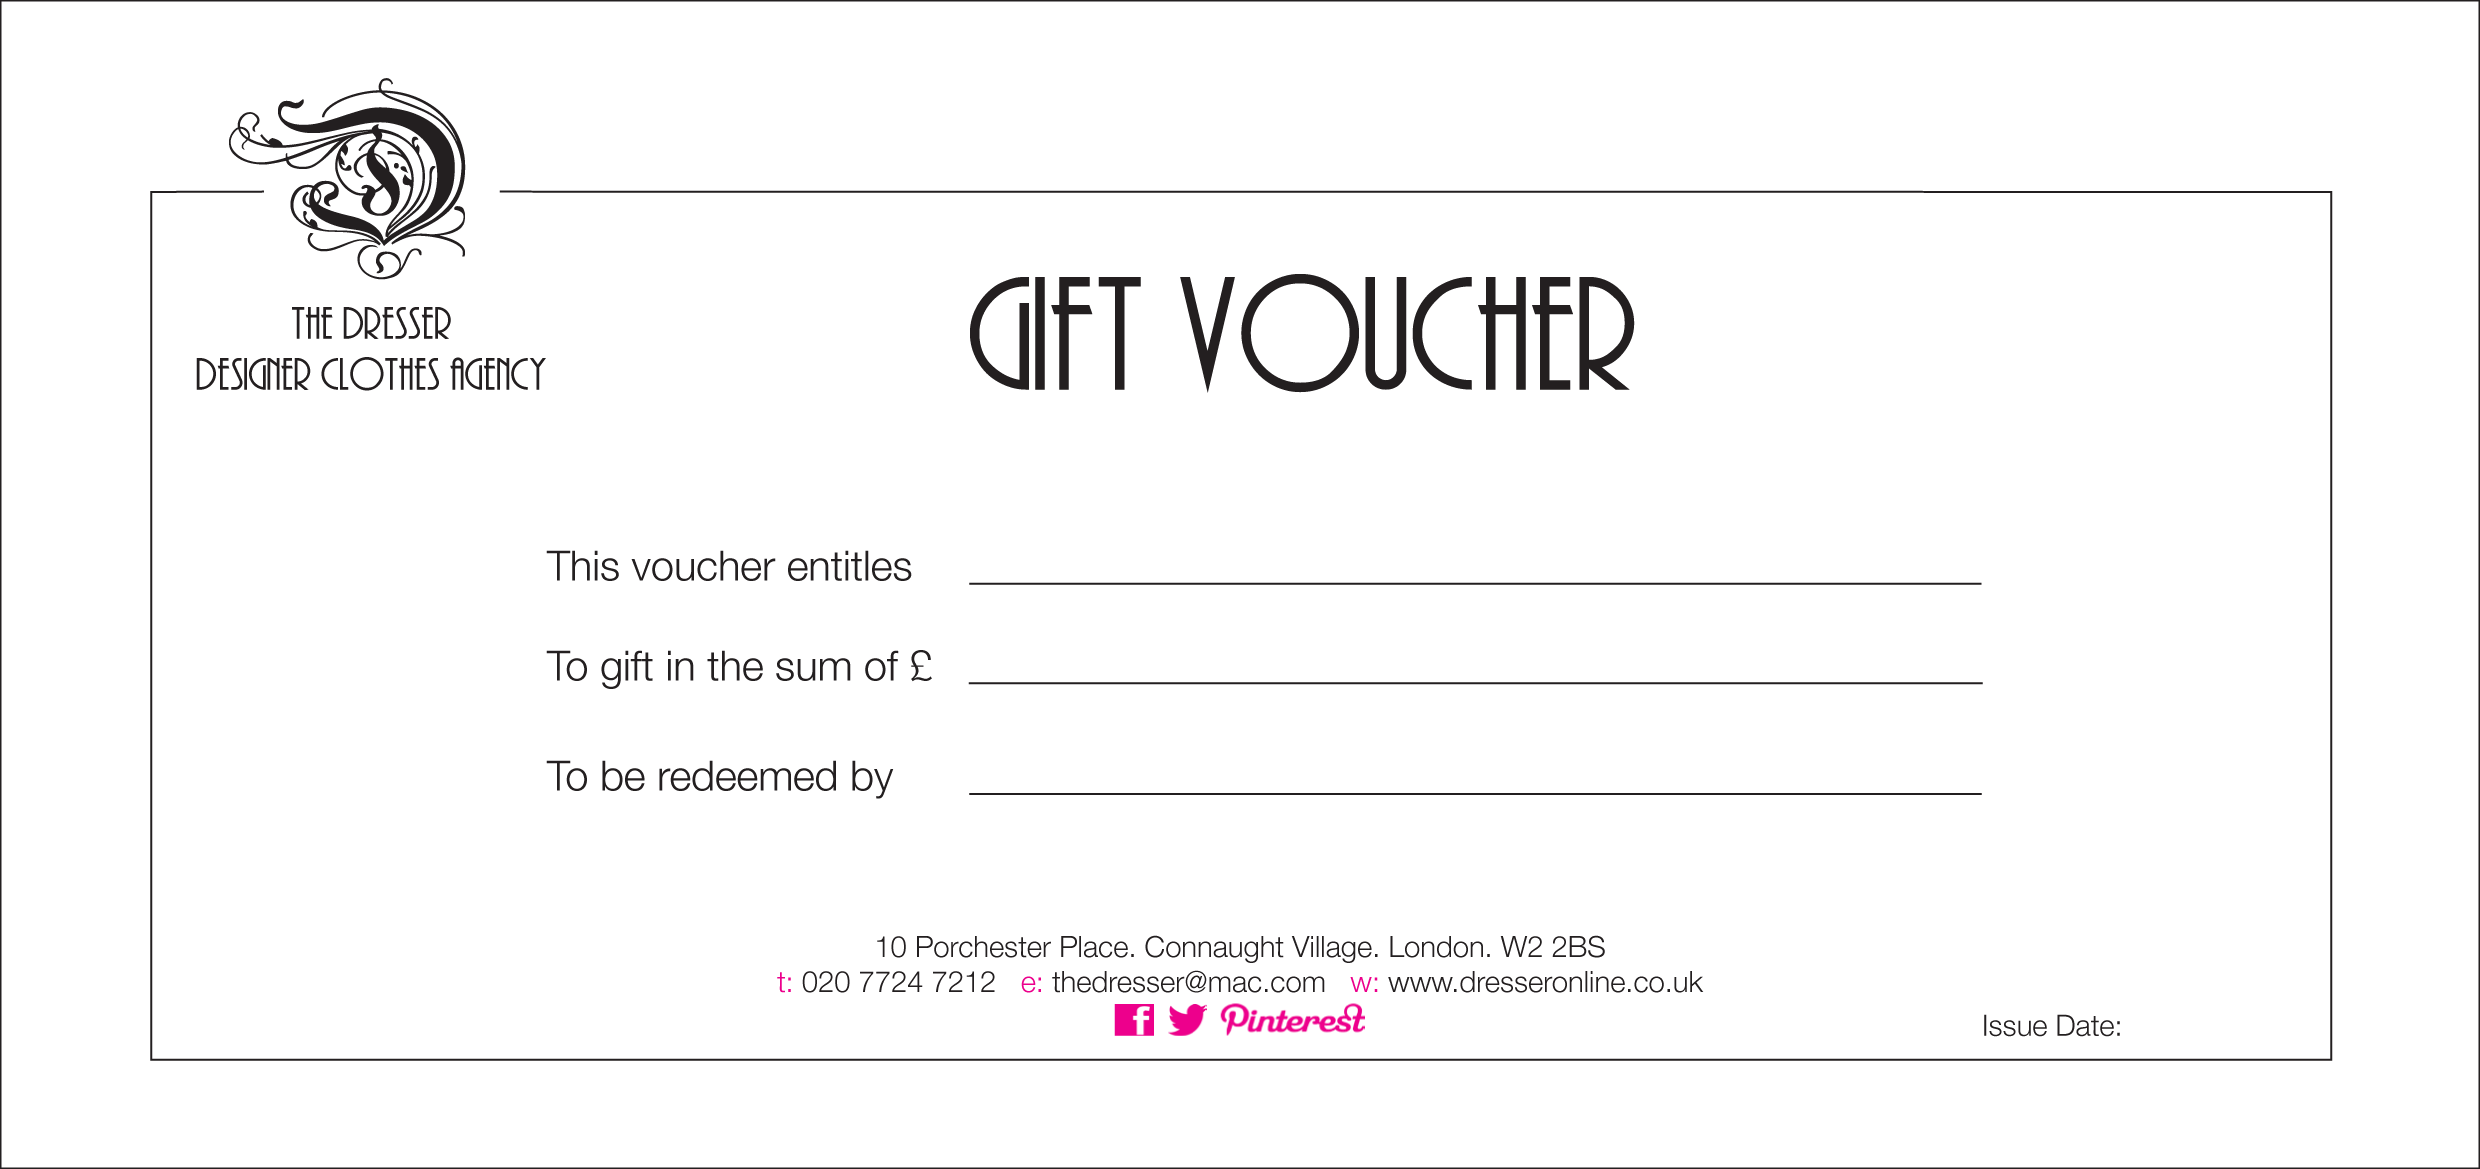 Blank coupon png. Wording for gift vouchers